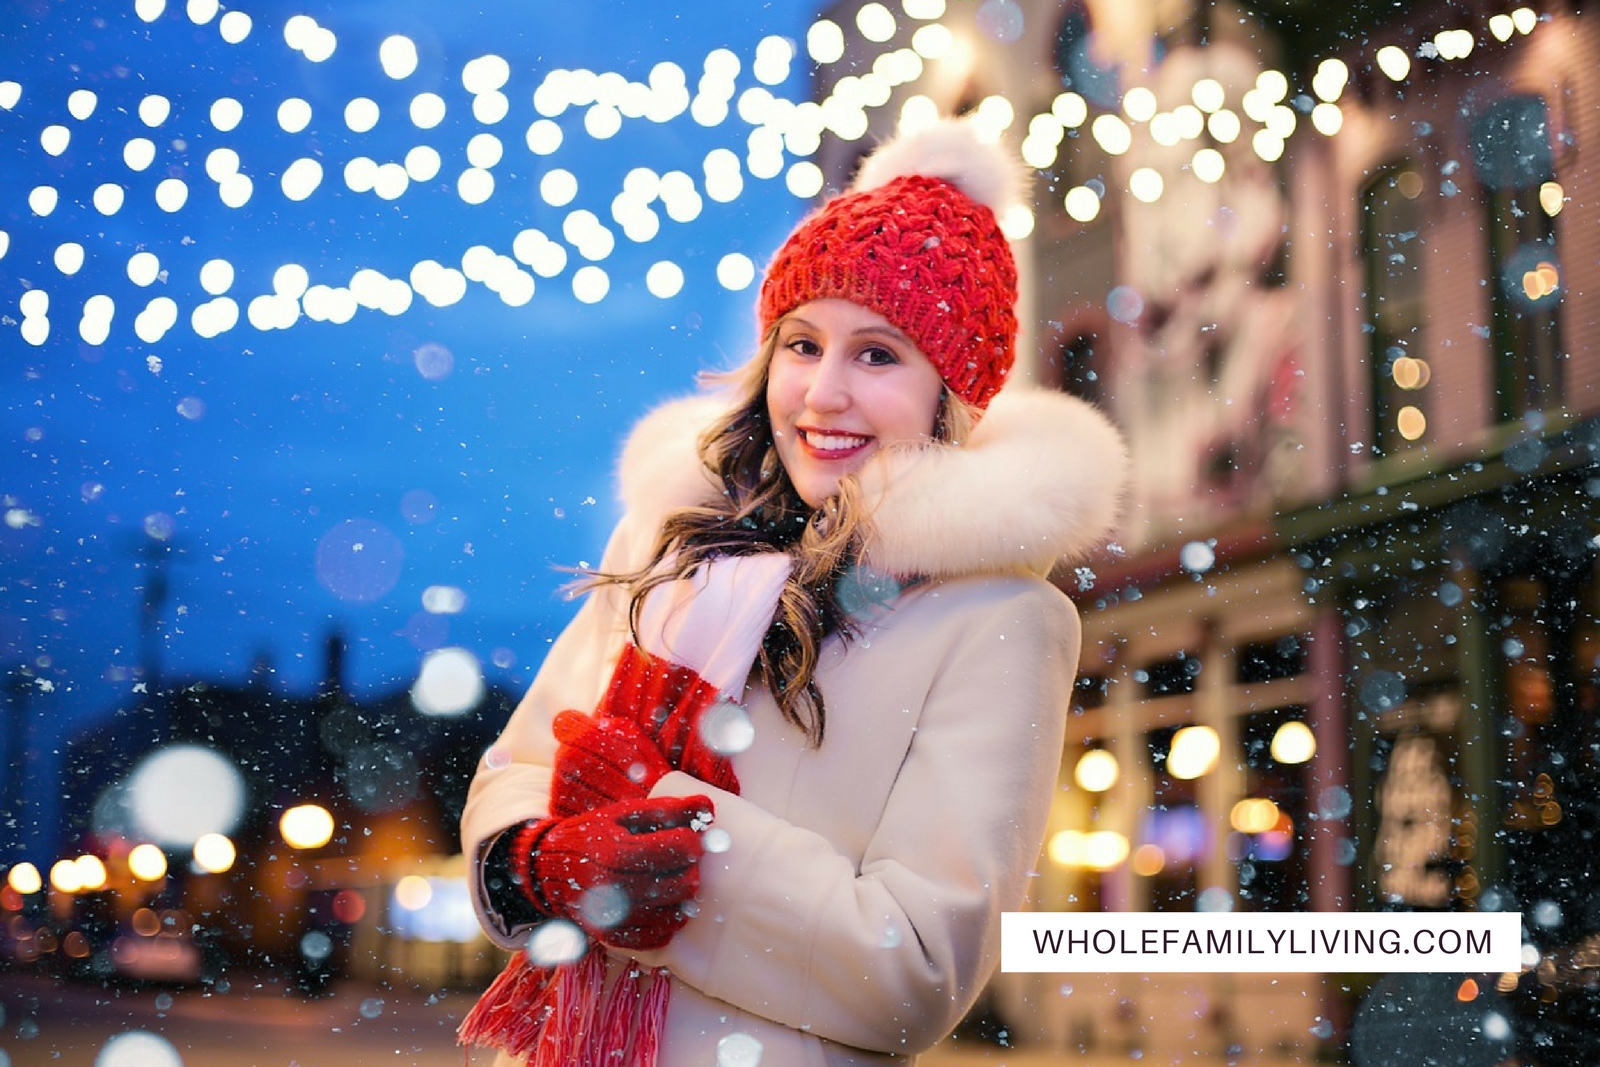 12 Ways to De-stress During the Holidays | Whole Family Living